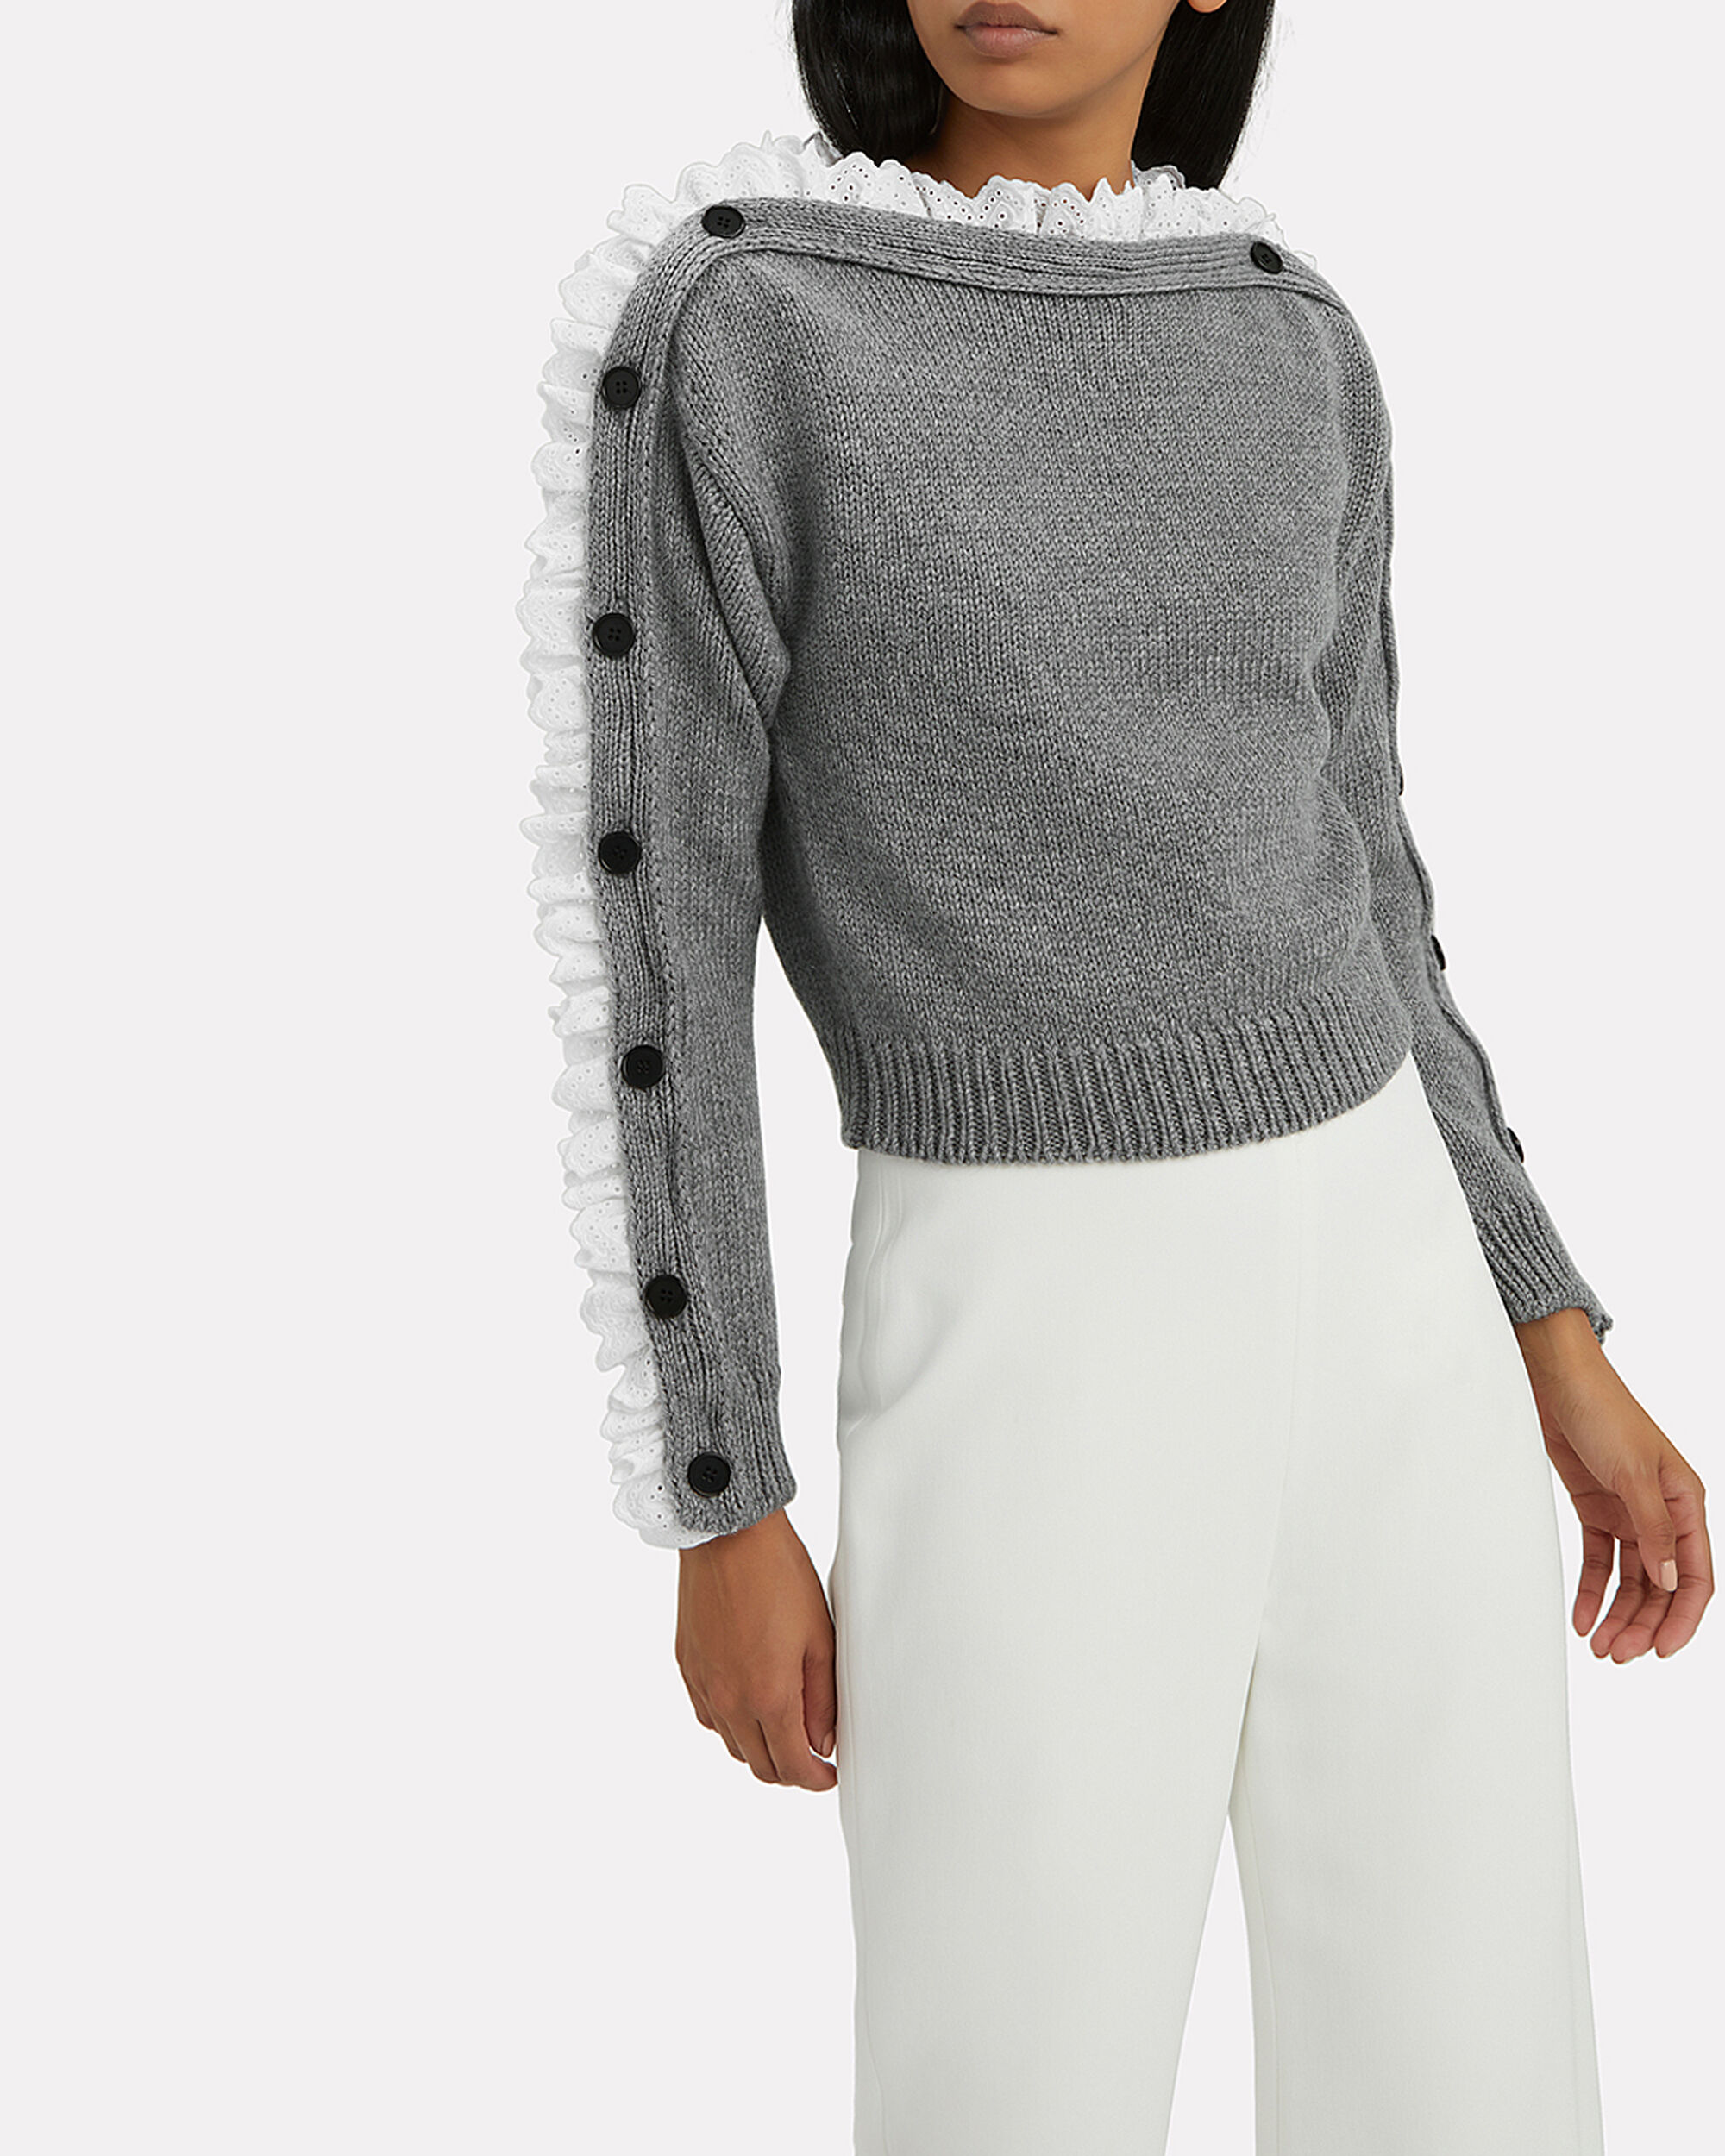 Lace-Trimmed Sweater, GREY, hi-res